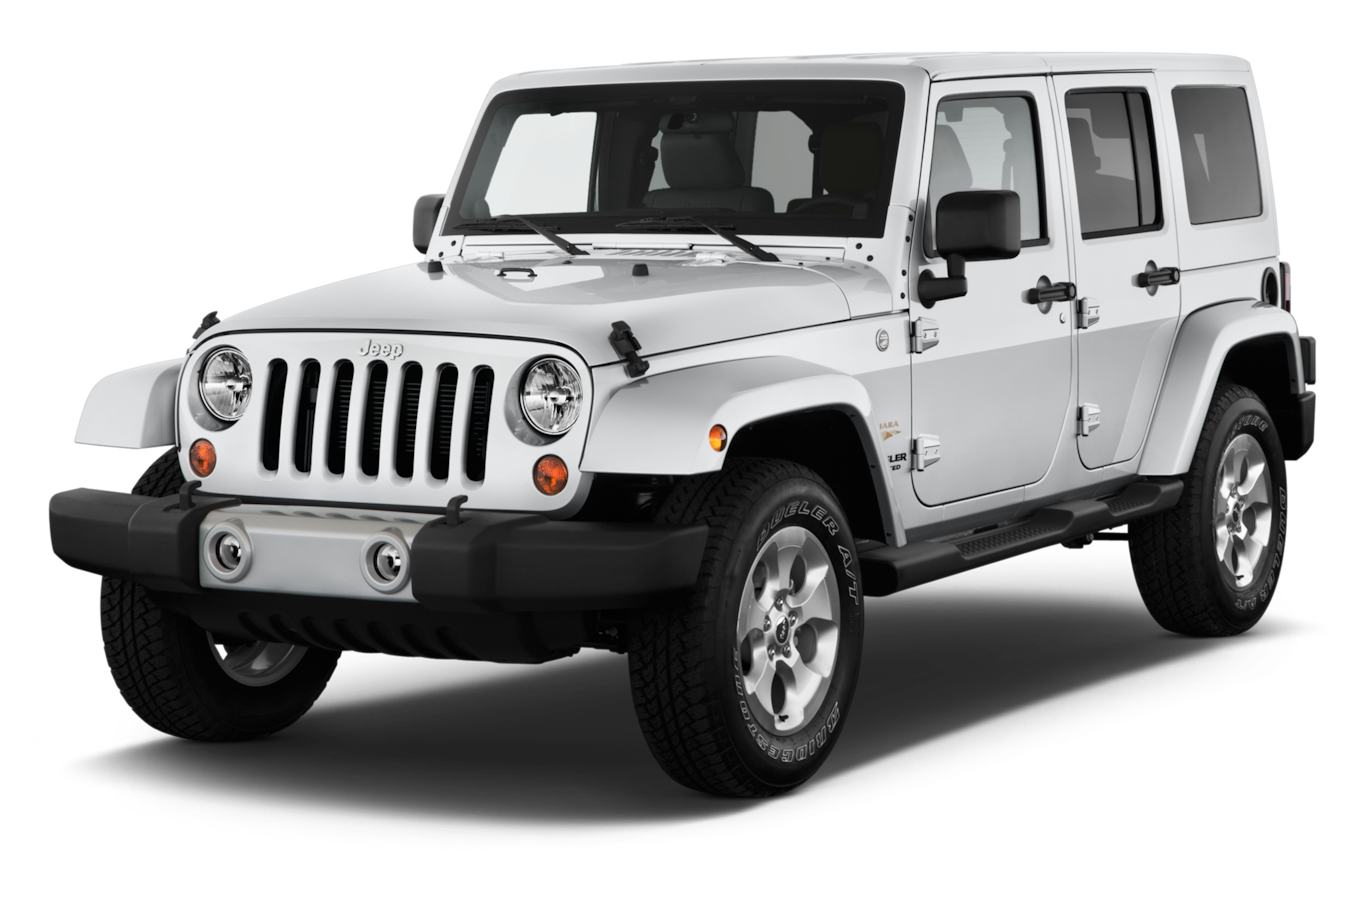 jeep wrangler unlimited reviews and rating motor trend #22838